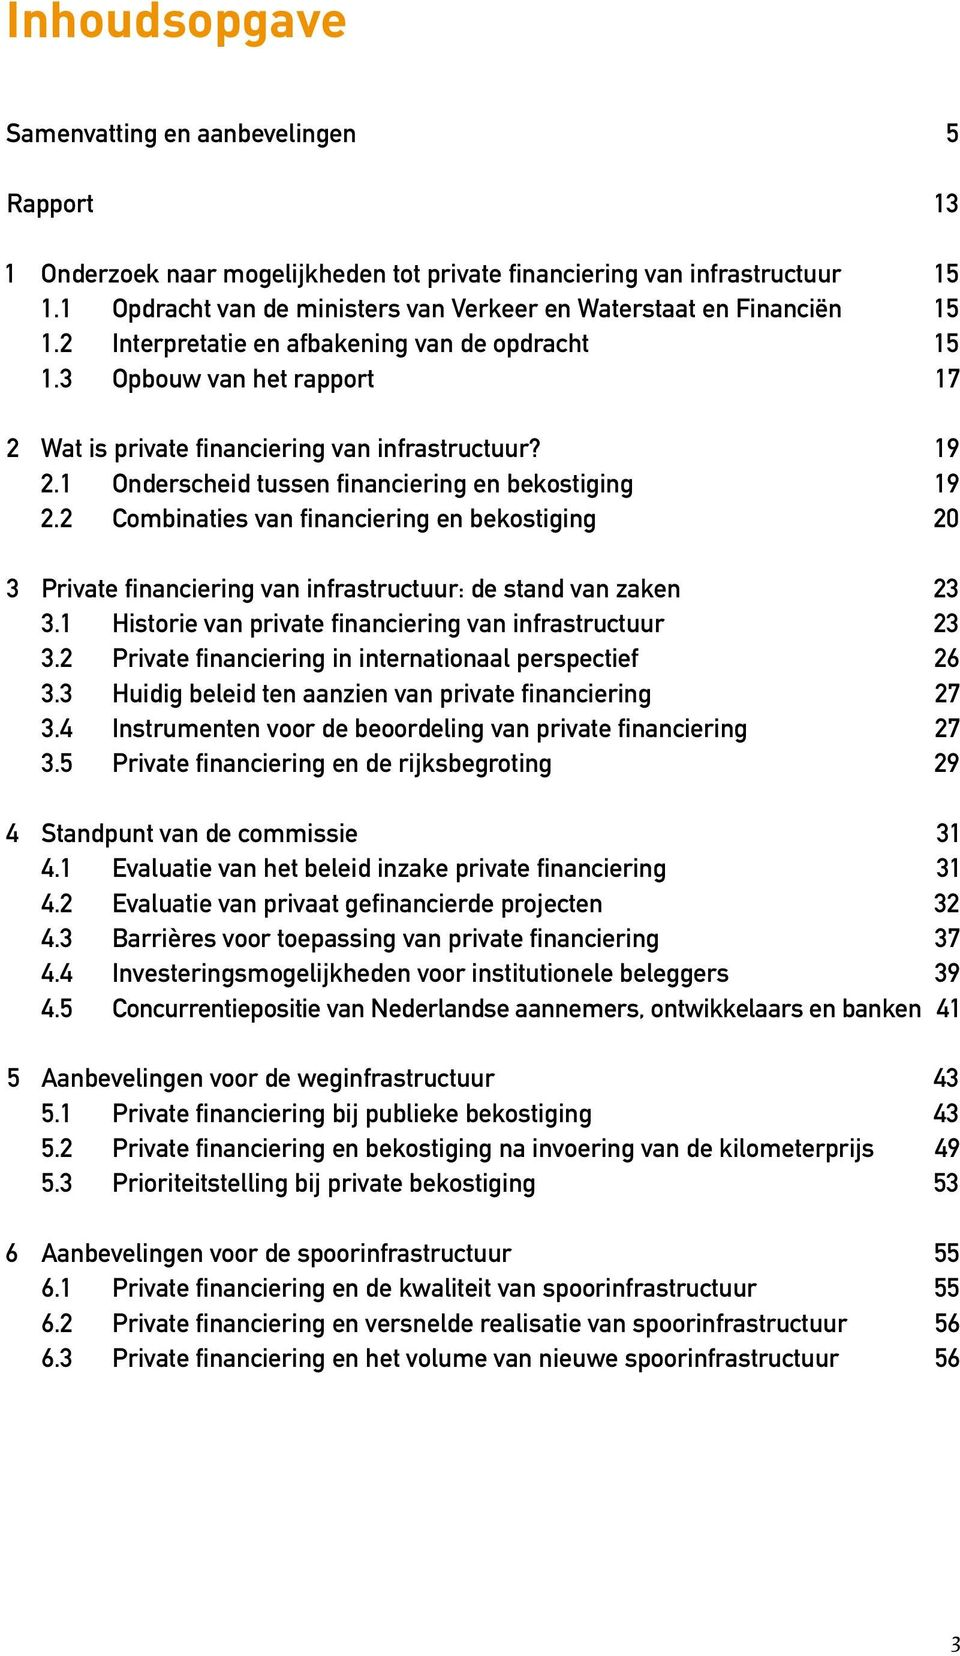 19 2.1 Onderscheid tussen financiering en bekostiging 19 2.2 Combinaties van financiering en bekostiging 20 3 Private financiering van infrastructuur: de stand van zaken 23 3.